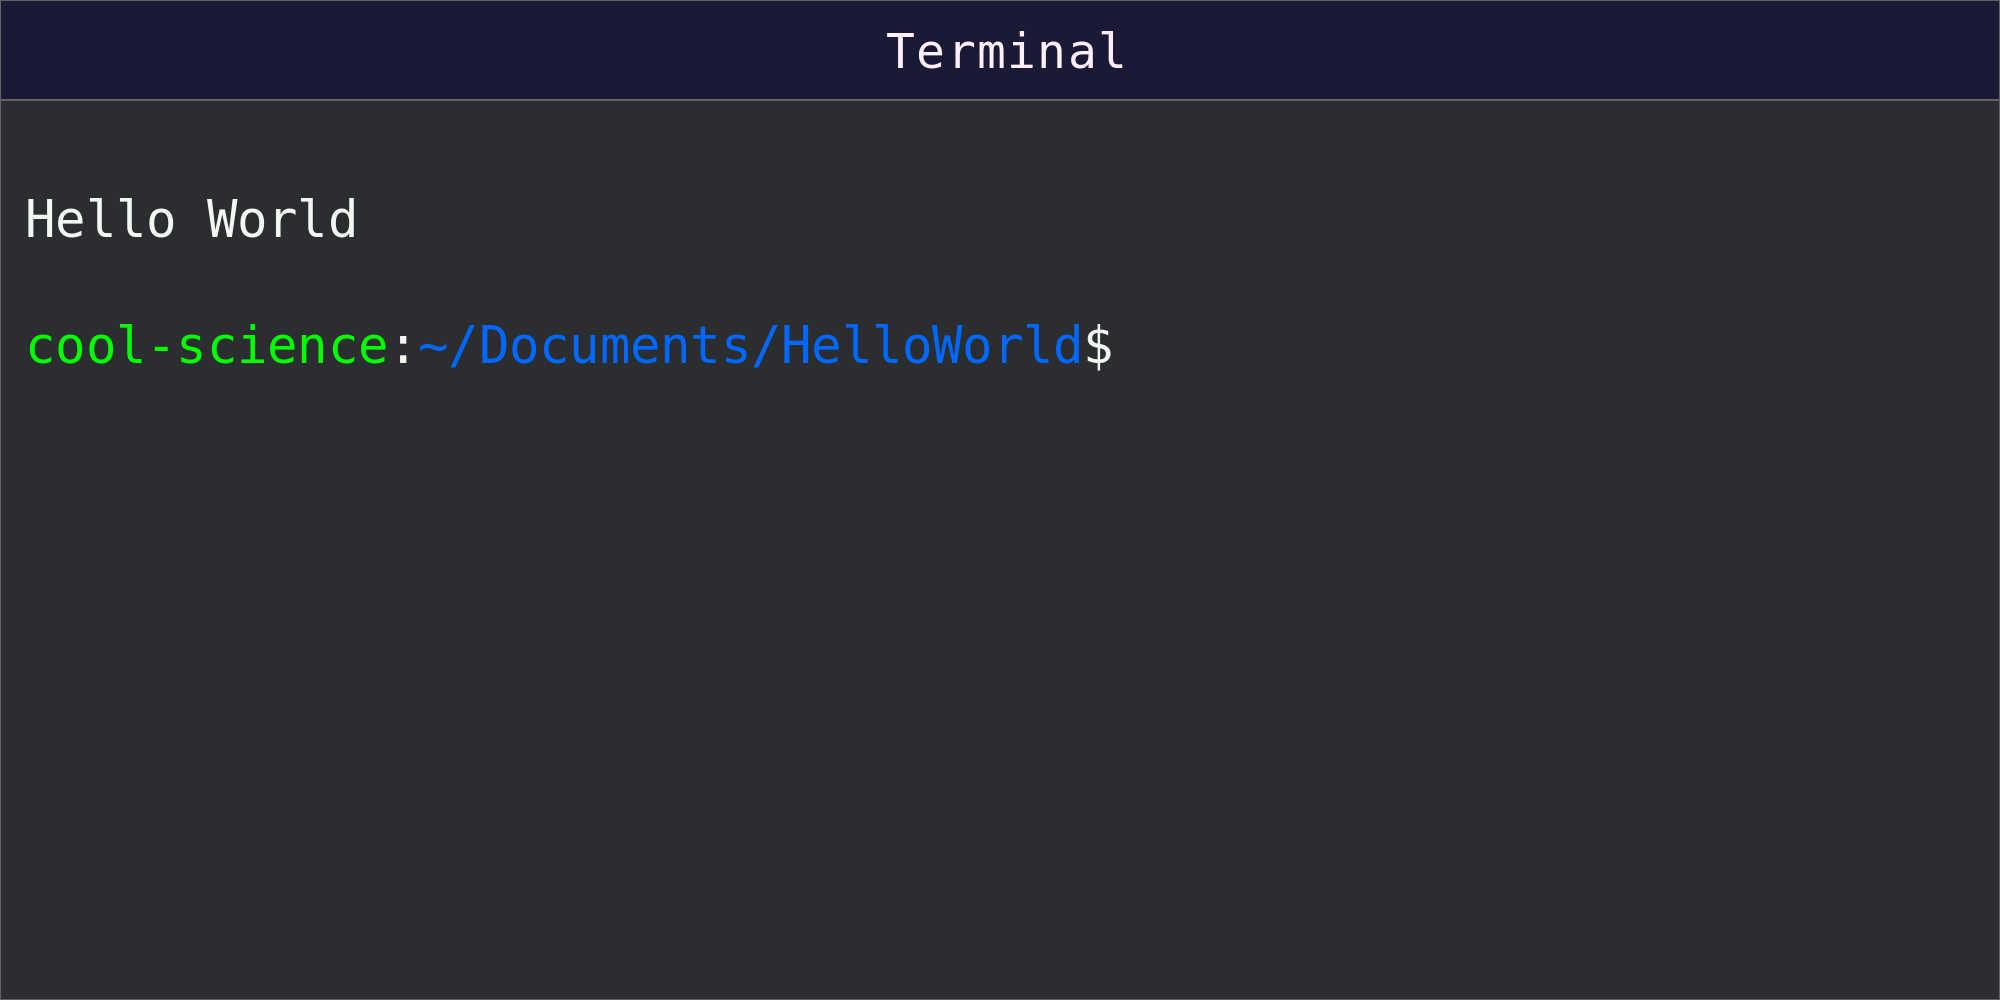 Commands and new results shown in command line terminal